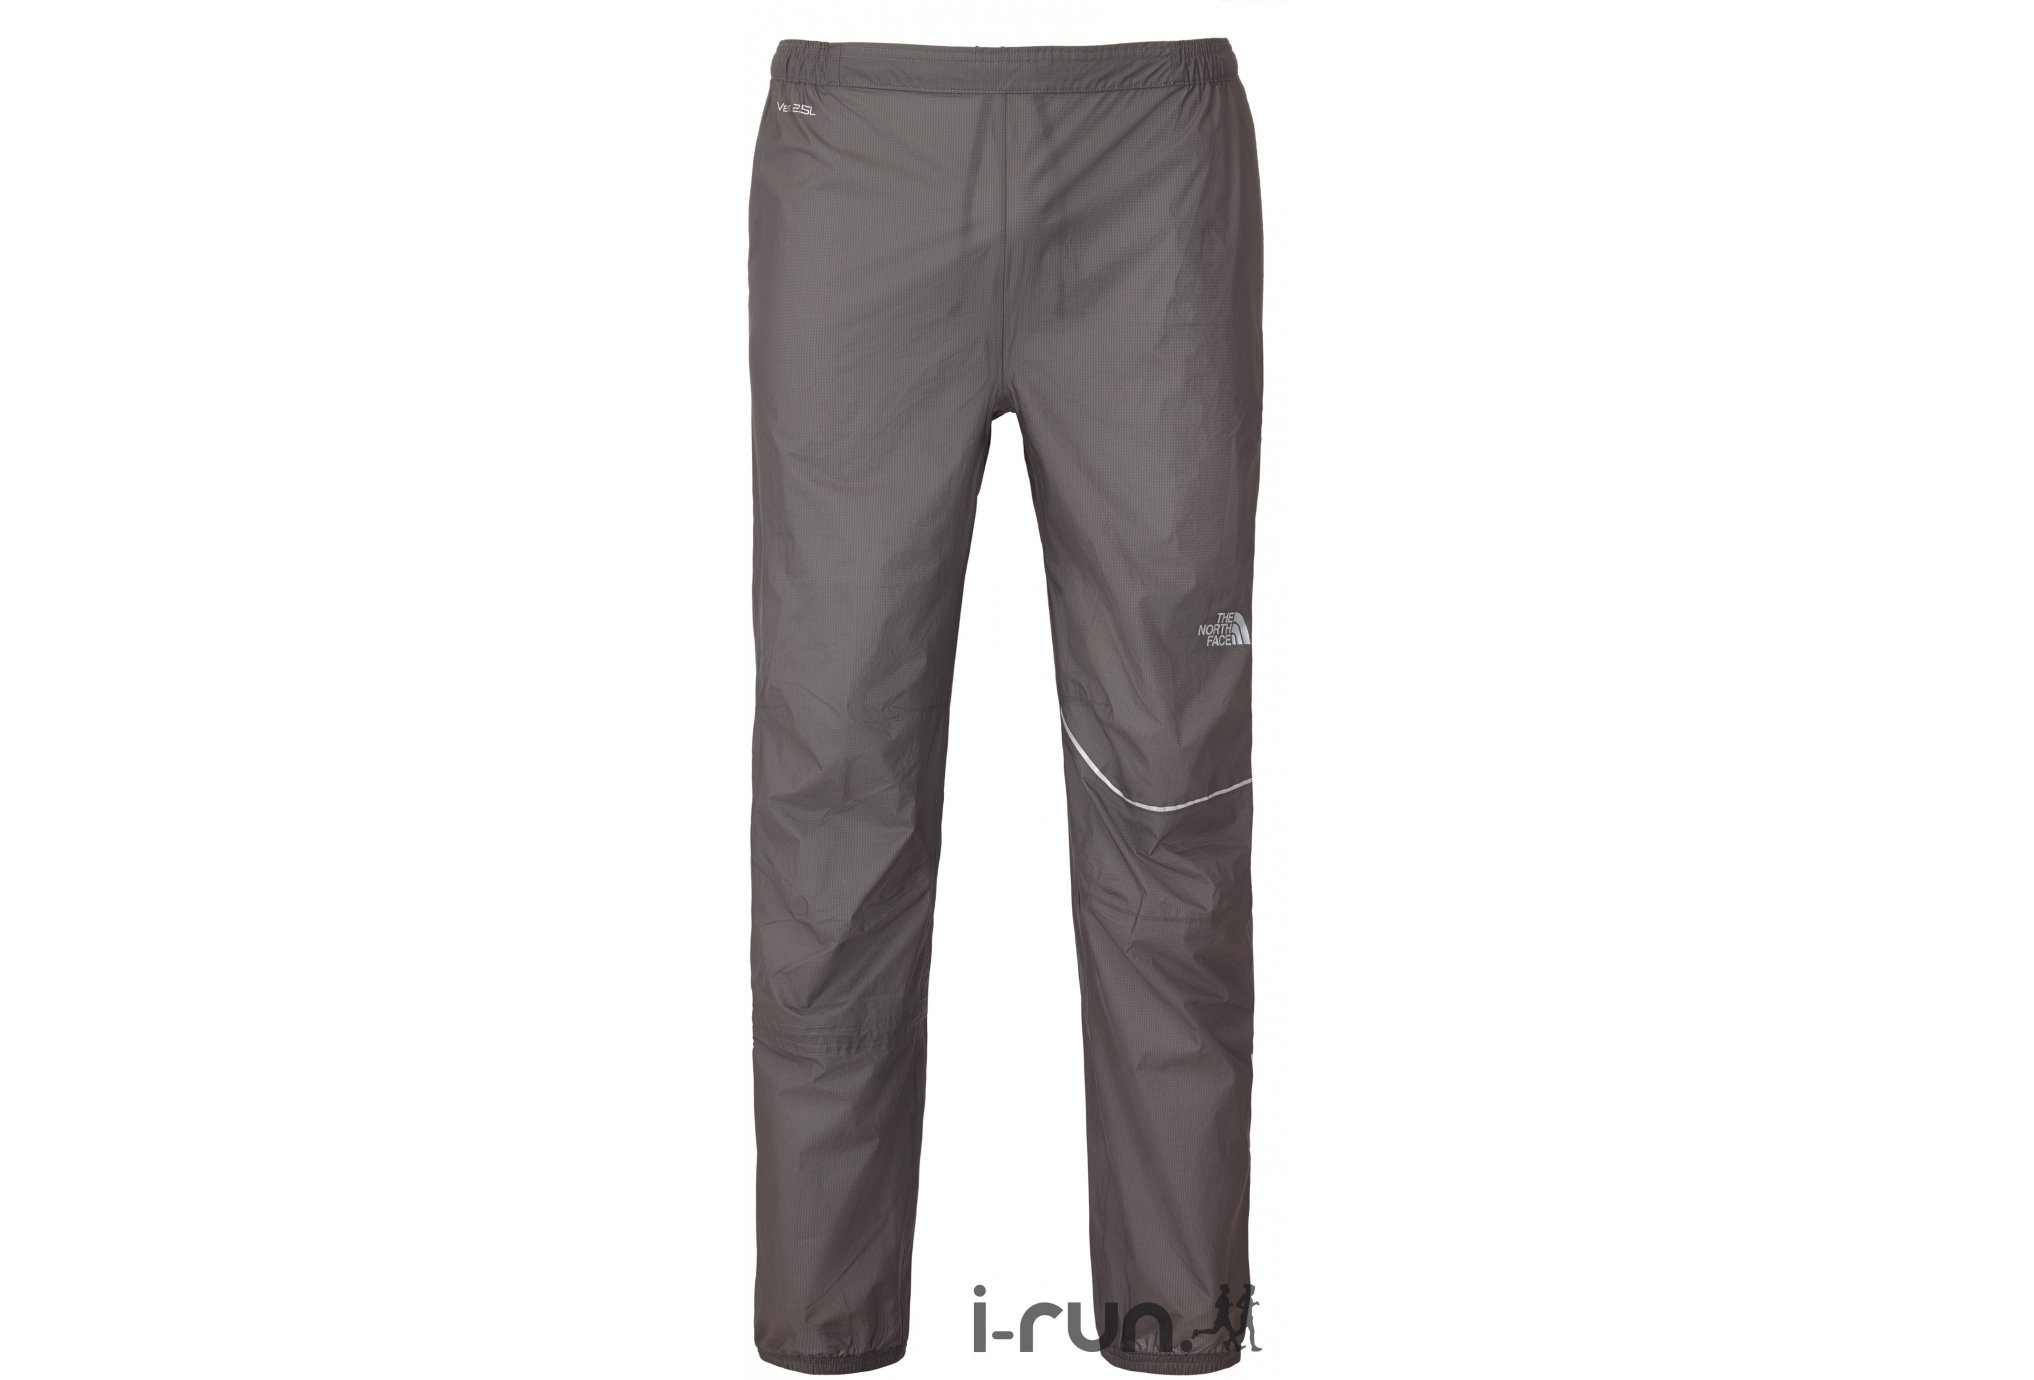 The North Face Pantalon Storm Stow W Diététique Vêtements femme